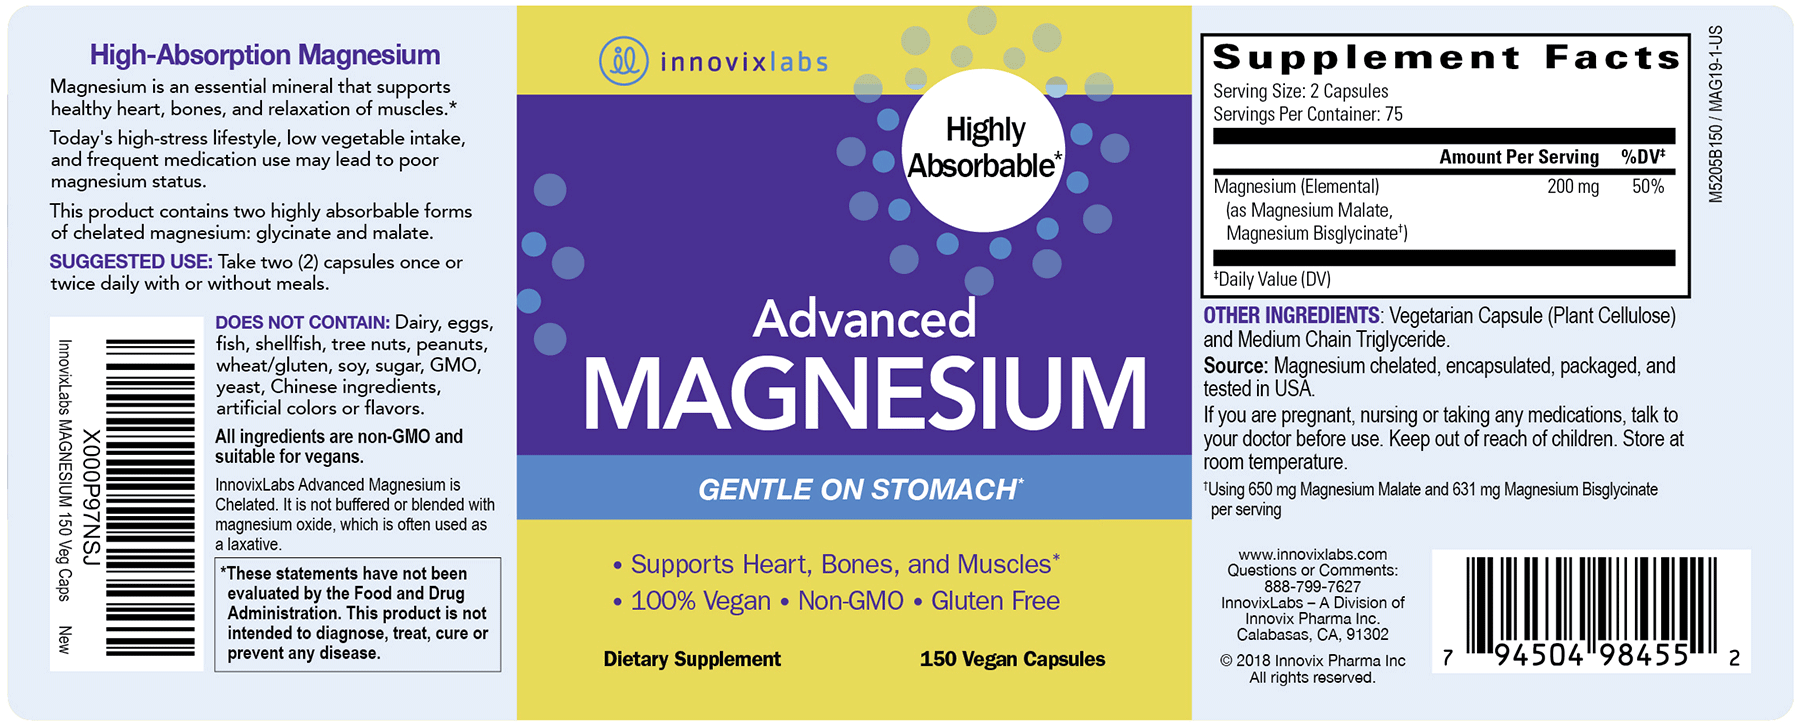 Advanced Magnesium label